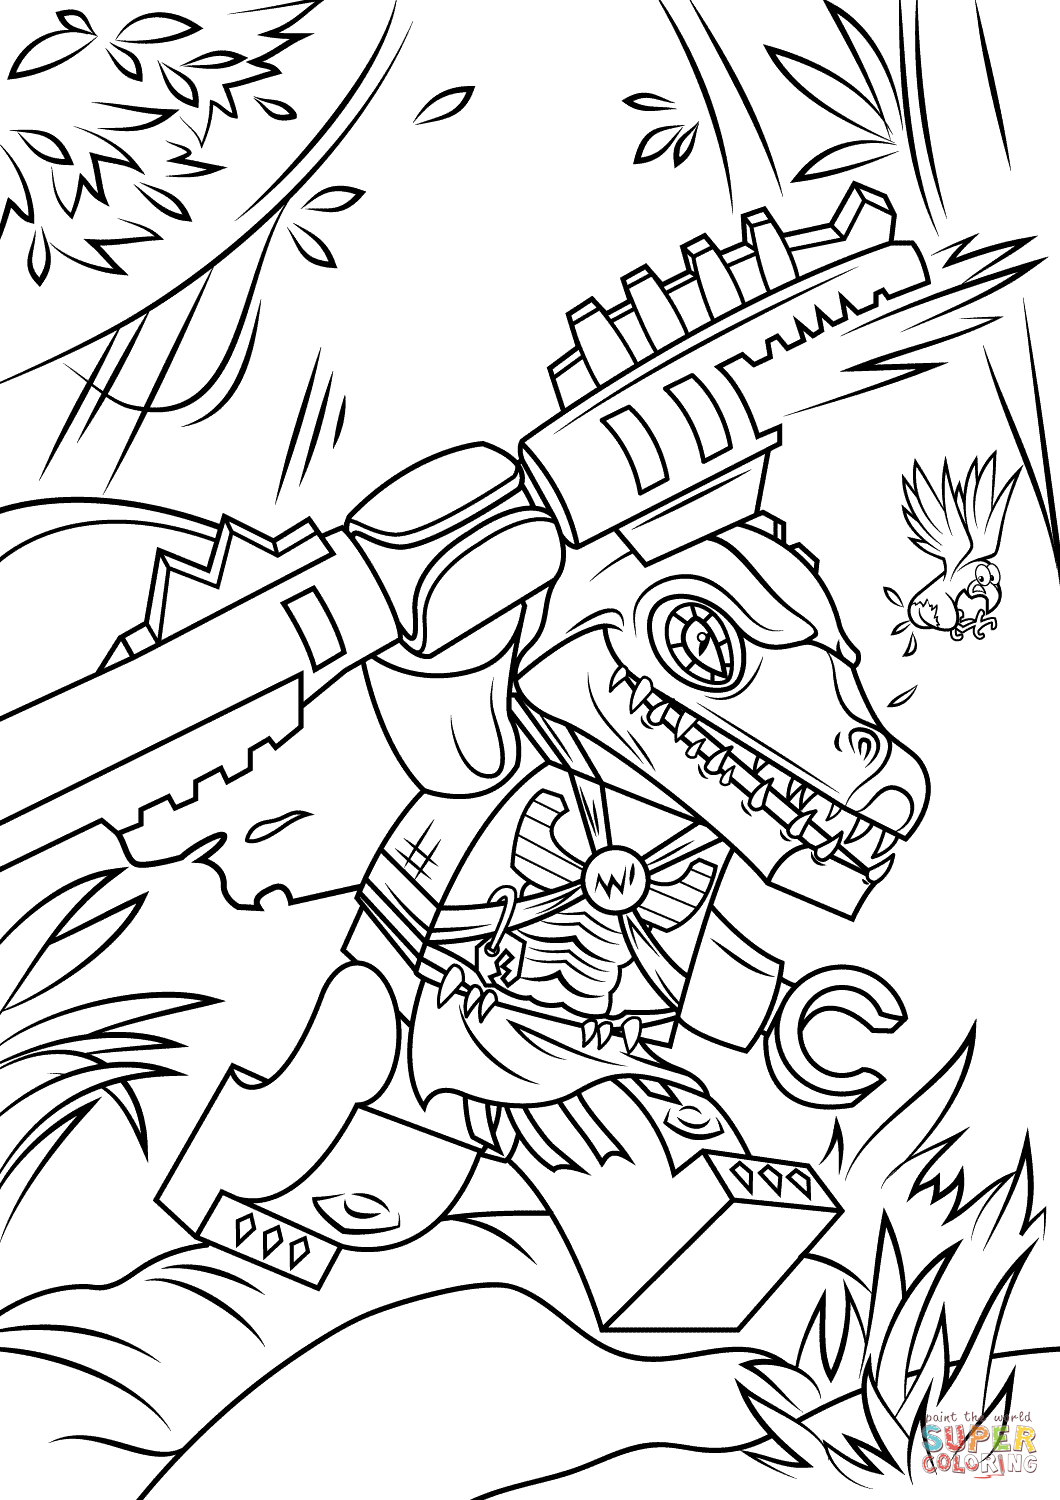 chima coloring page chima coloring pages rhino rogon coloring4free page coloring chima